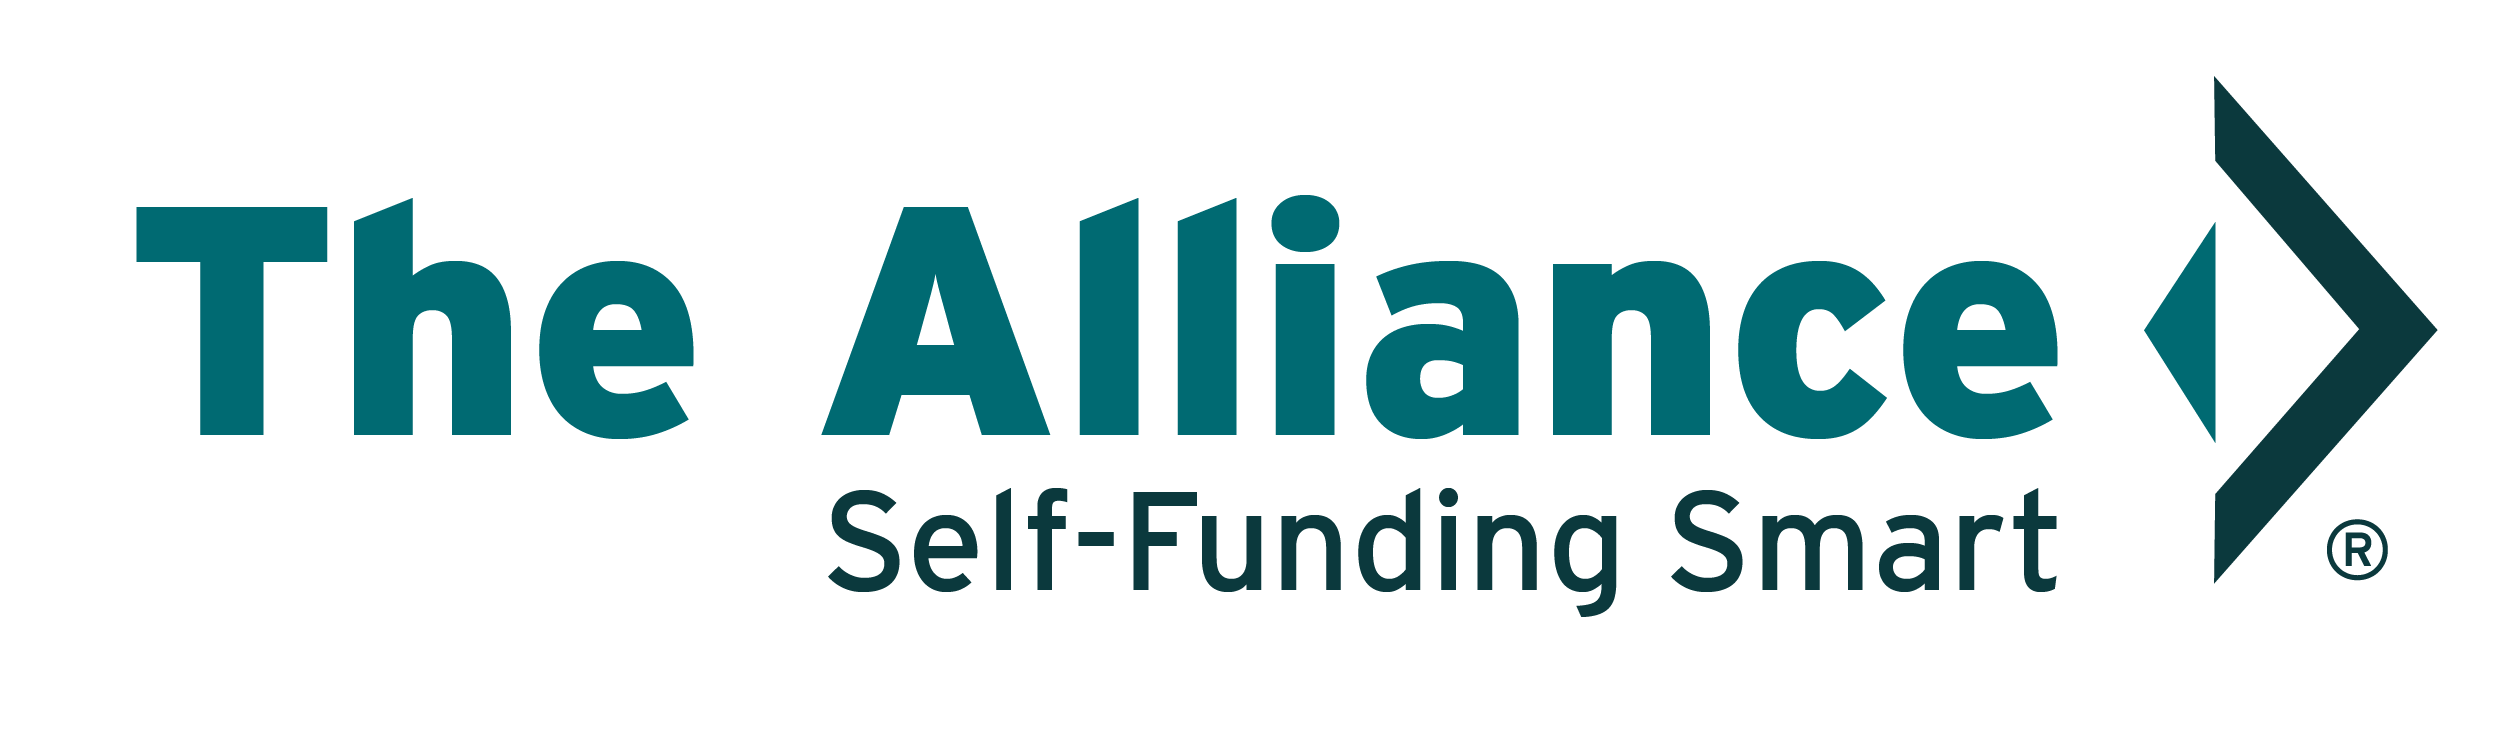 The Alliance | Self-Funded, High-Value Provider Networks